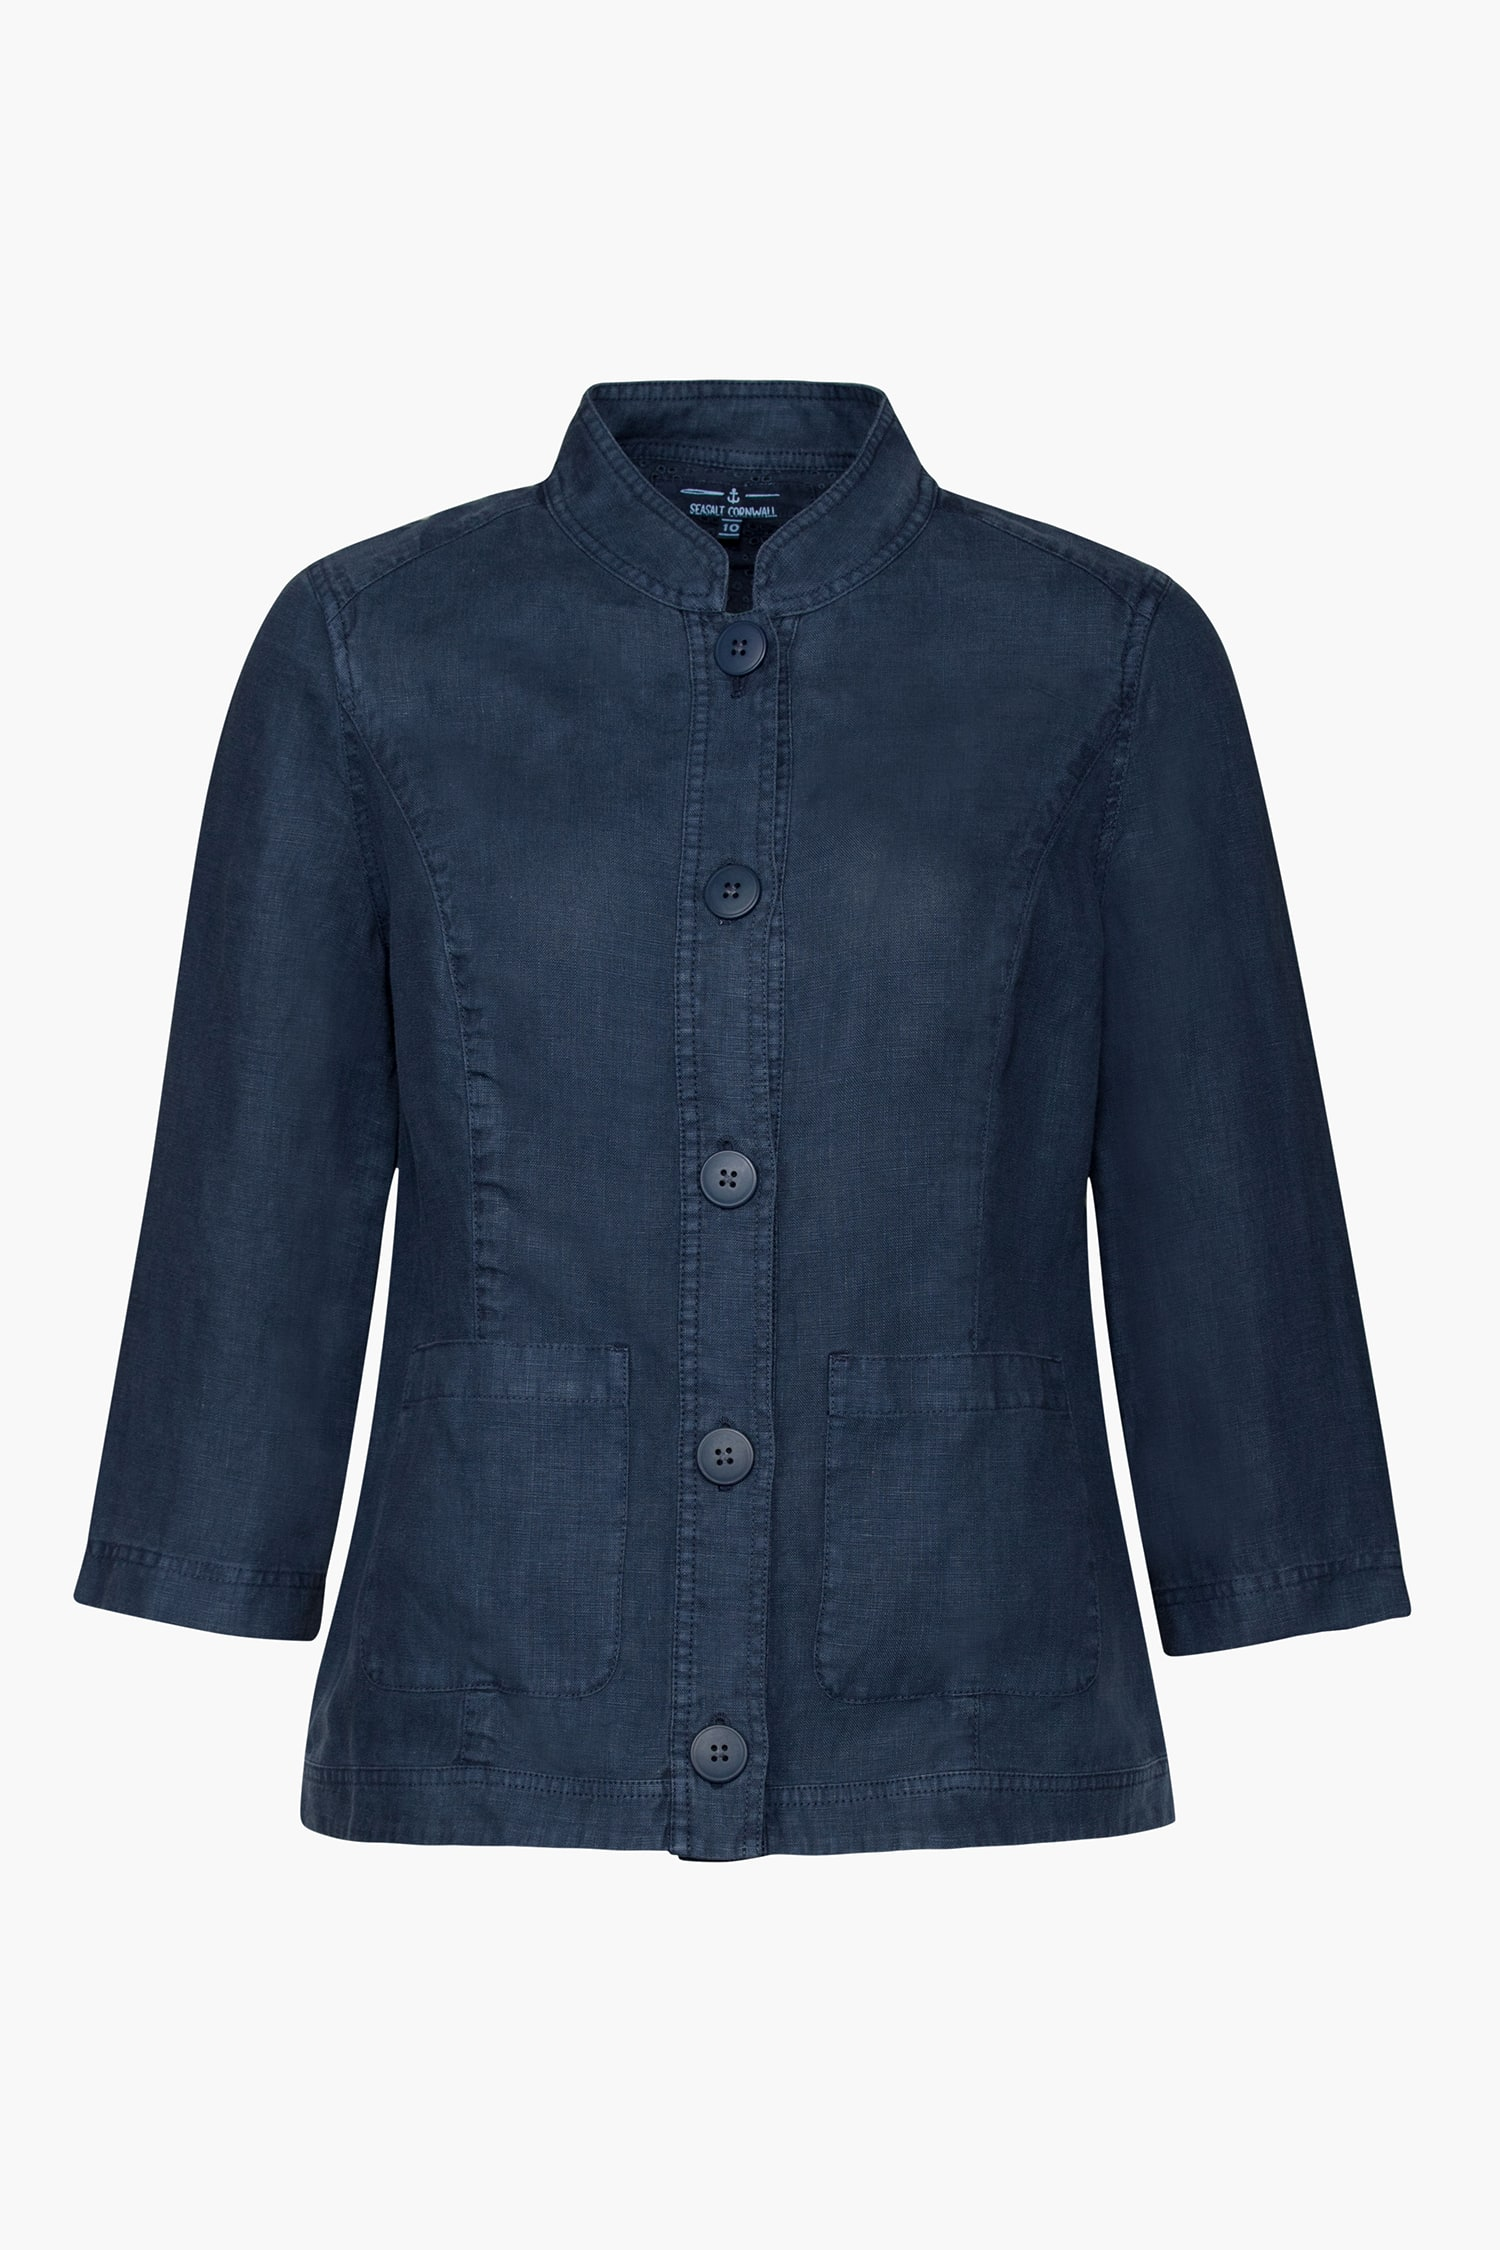 Bullfinch Jacket Women S Linen Jacket Seasalt